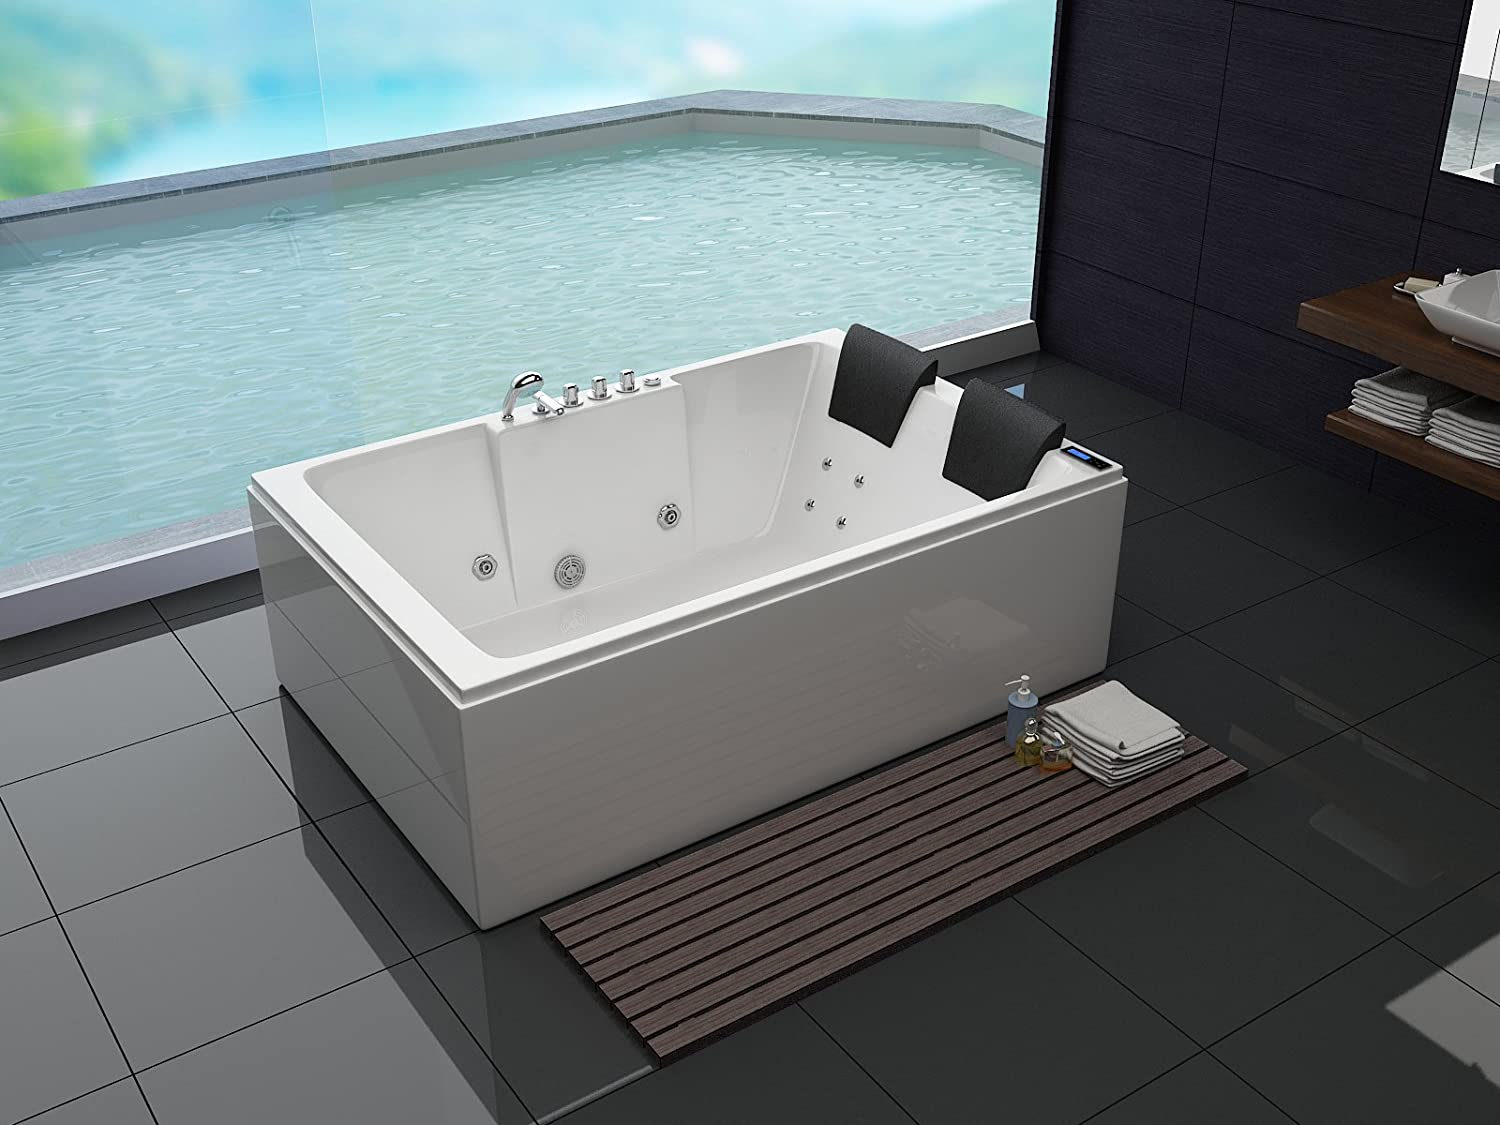 Whirlpool Bad Accessoires : Luxus whirlpool badewanne 180x120 in vollausstattung massage